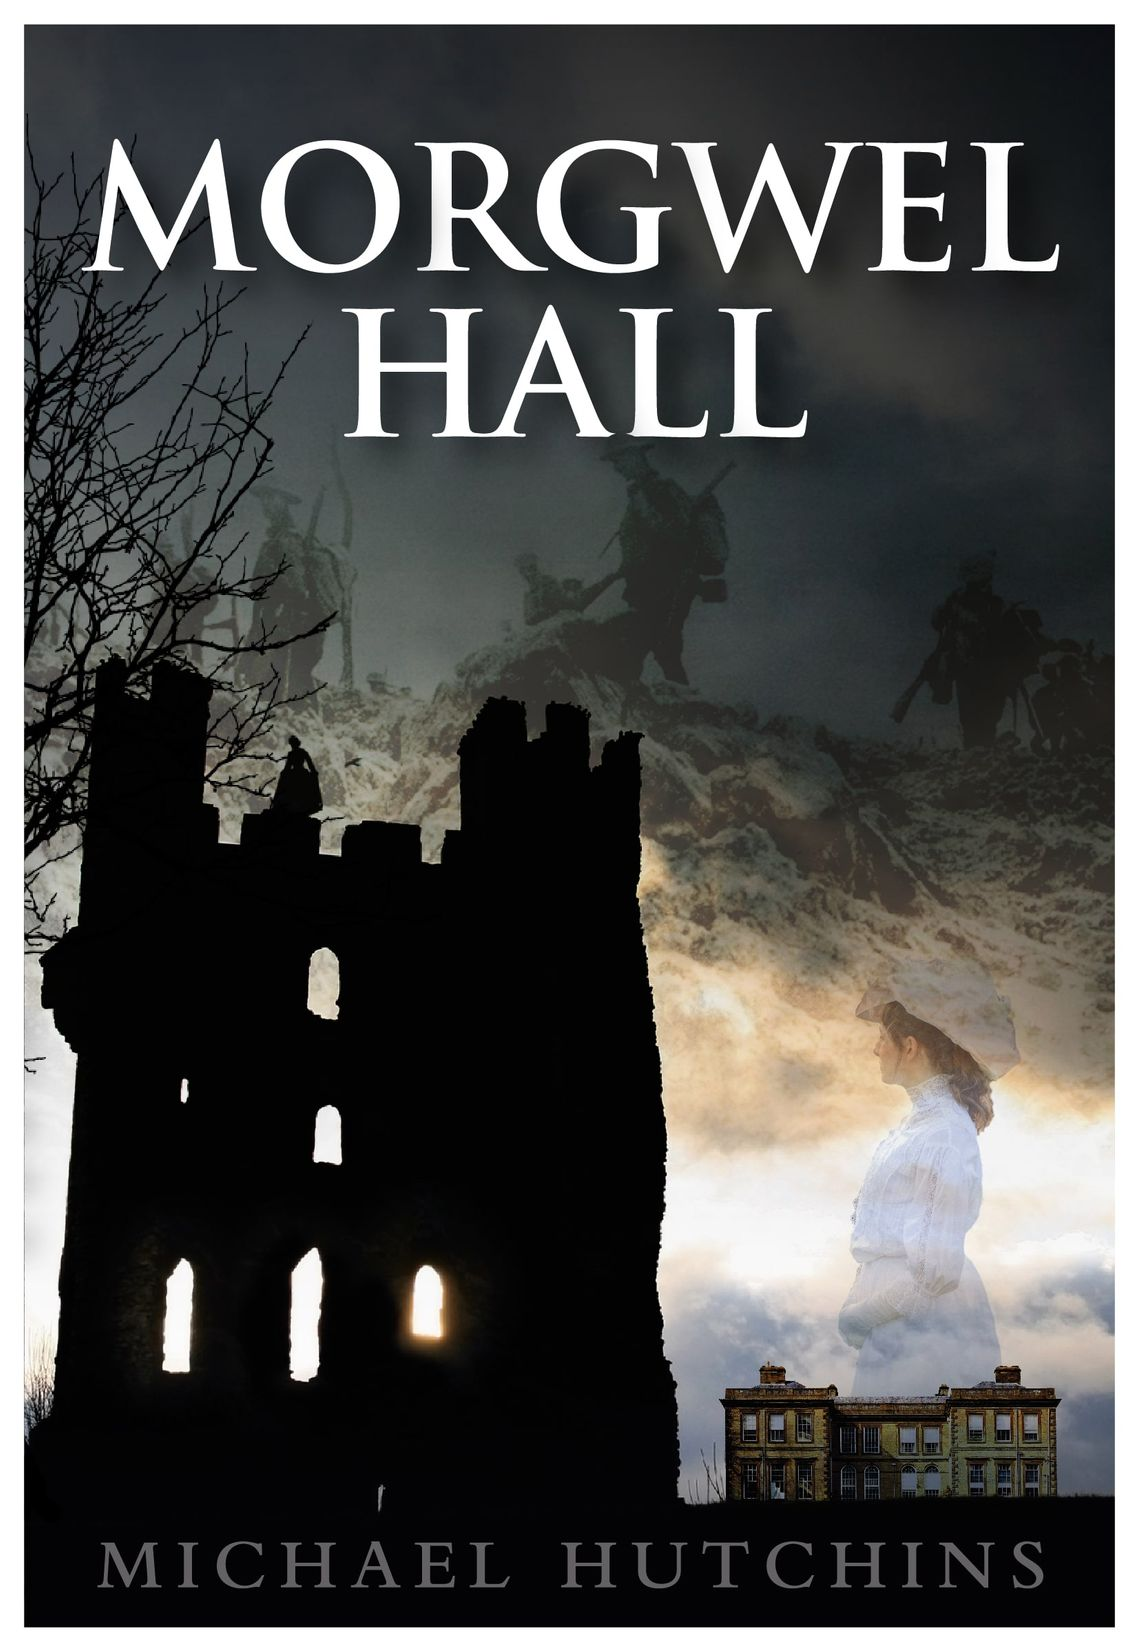 Michael Hutchins discusses his new ghost story